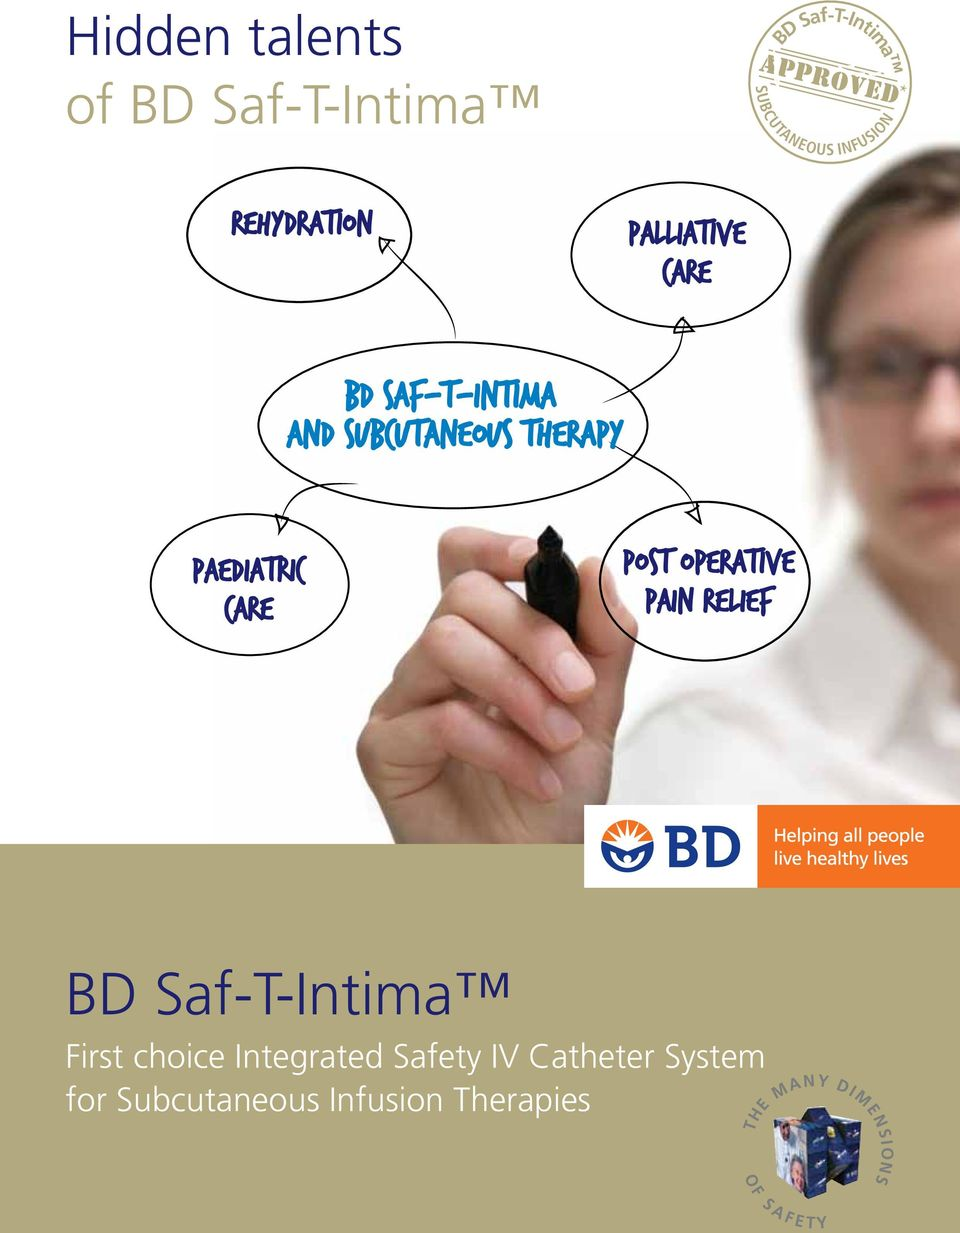 PAEDIATRIC CARE POST OPERATIVe PAIN RELIEF BD Saf-T-Intima First choice